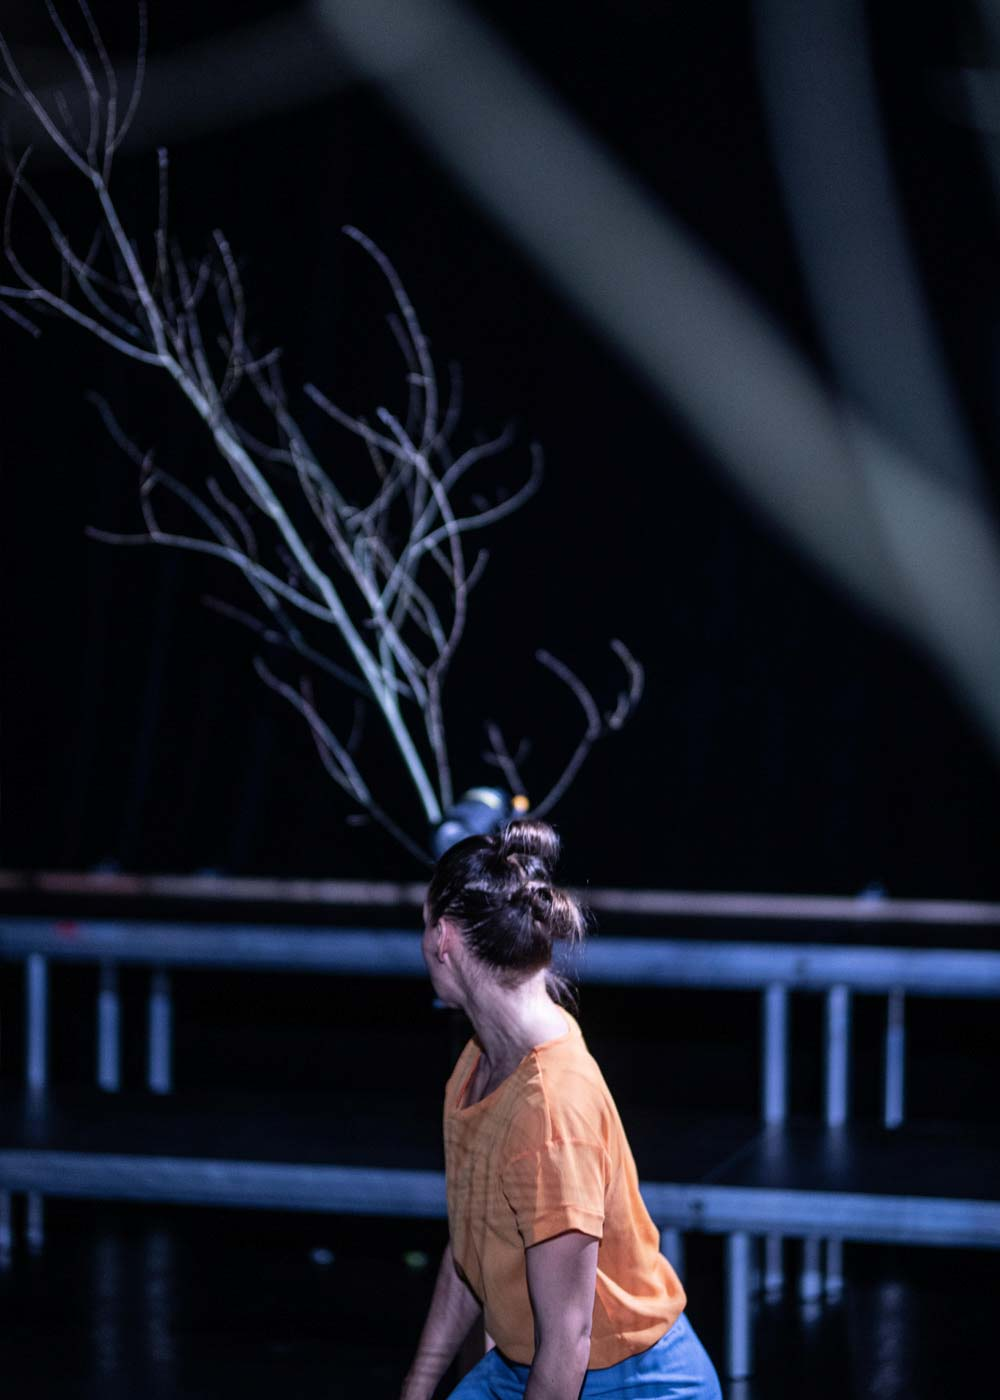 Anna Kempin, looking towards dance performance decoration, which is a tree branch